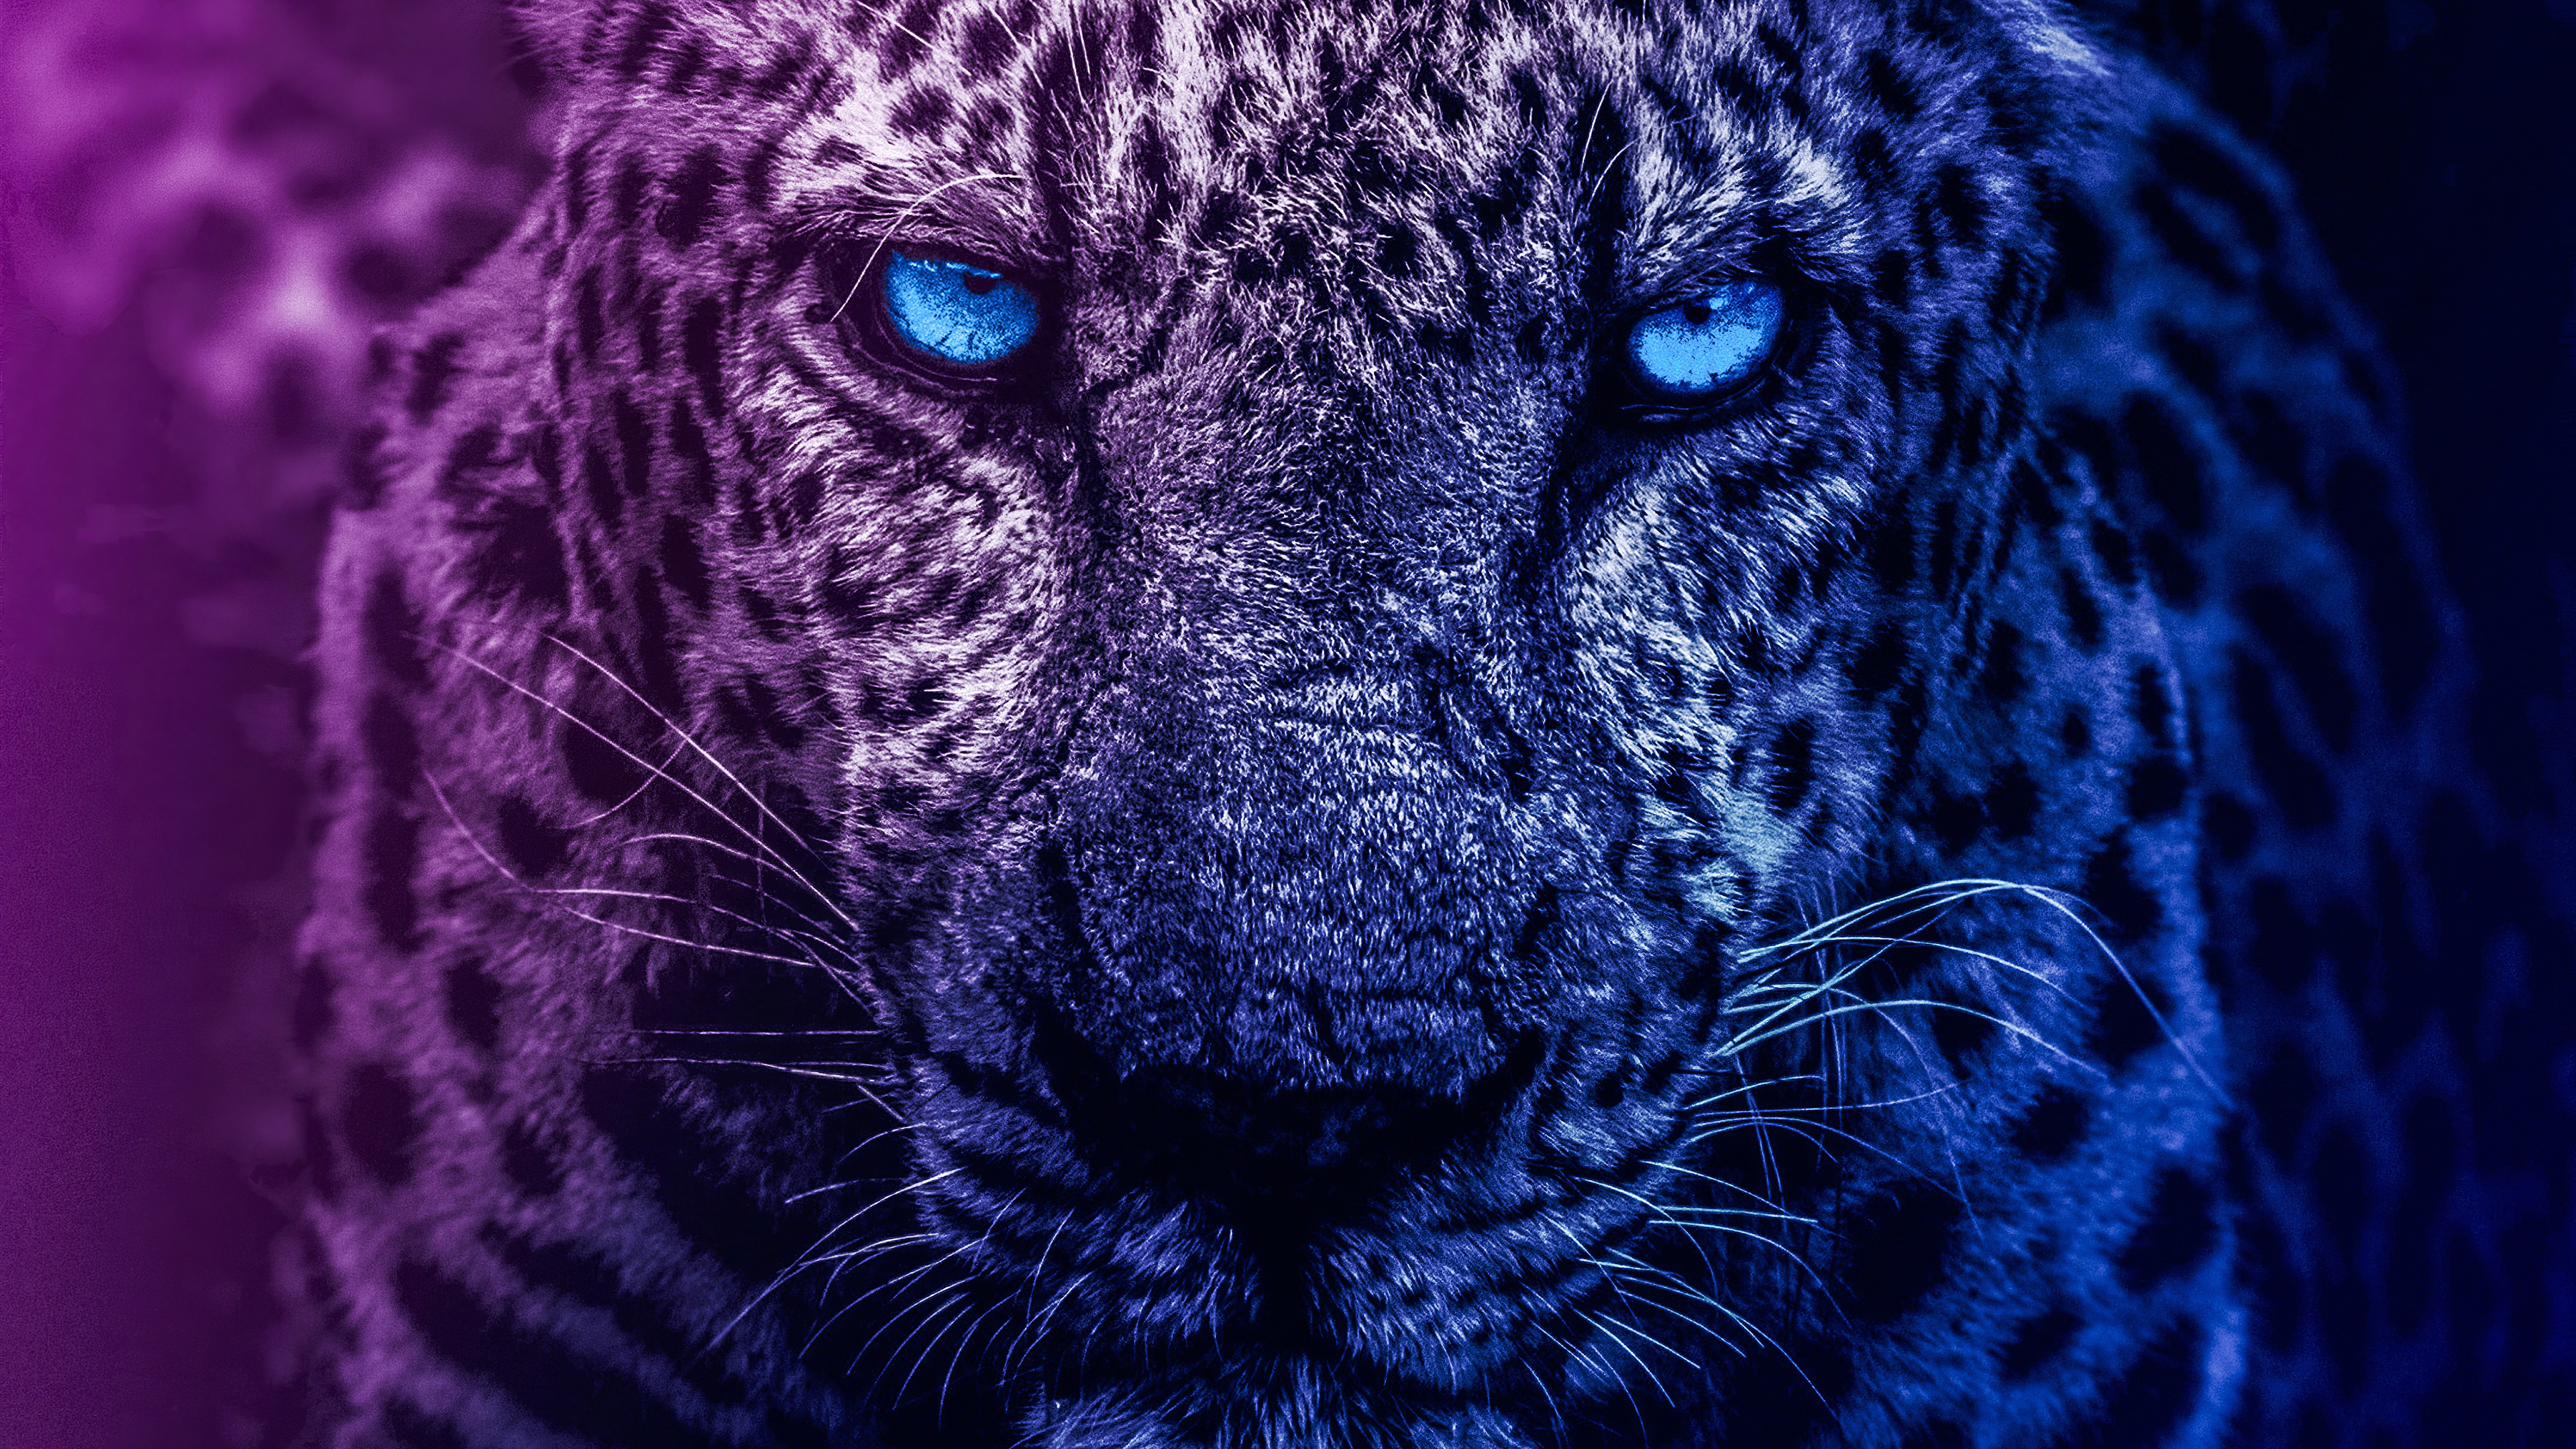 blue eyes lion 1579380386 - Blue Eyes Lion - Lion wallpapers 4k, Lion 4k wallpapper, blue eyes lions 4k wallpaper